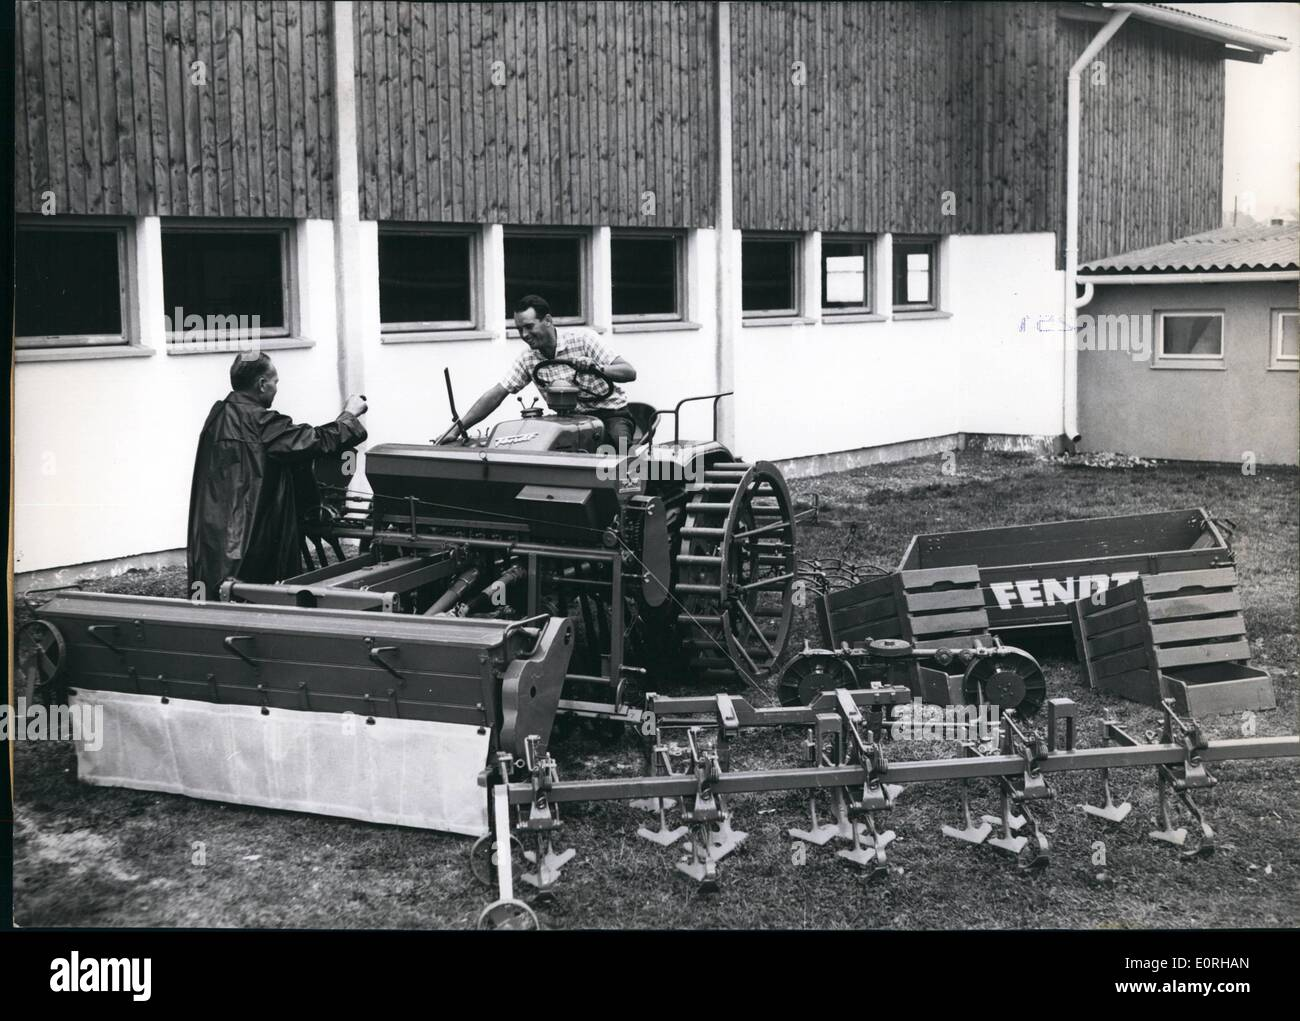 Sep. 09, 1959 - An automaton for the agriculture, exhibited at the Central Agriculture Fair A farm - right in the heart of Munich! - was built up for the Central Agriculture-Fair. It is furnished with all tools and machines that make a modern farm. One of the things exhibited is a tool carrier by means of which one man can do all kind of work necessary on a form More than 20 different farming tools can be put up on this carrier, and it is, for instance, quite sufficient for fully motorizing a farm which is about 40 acres large - Stock Image